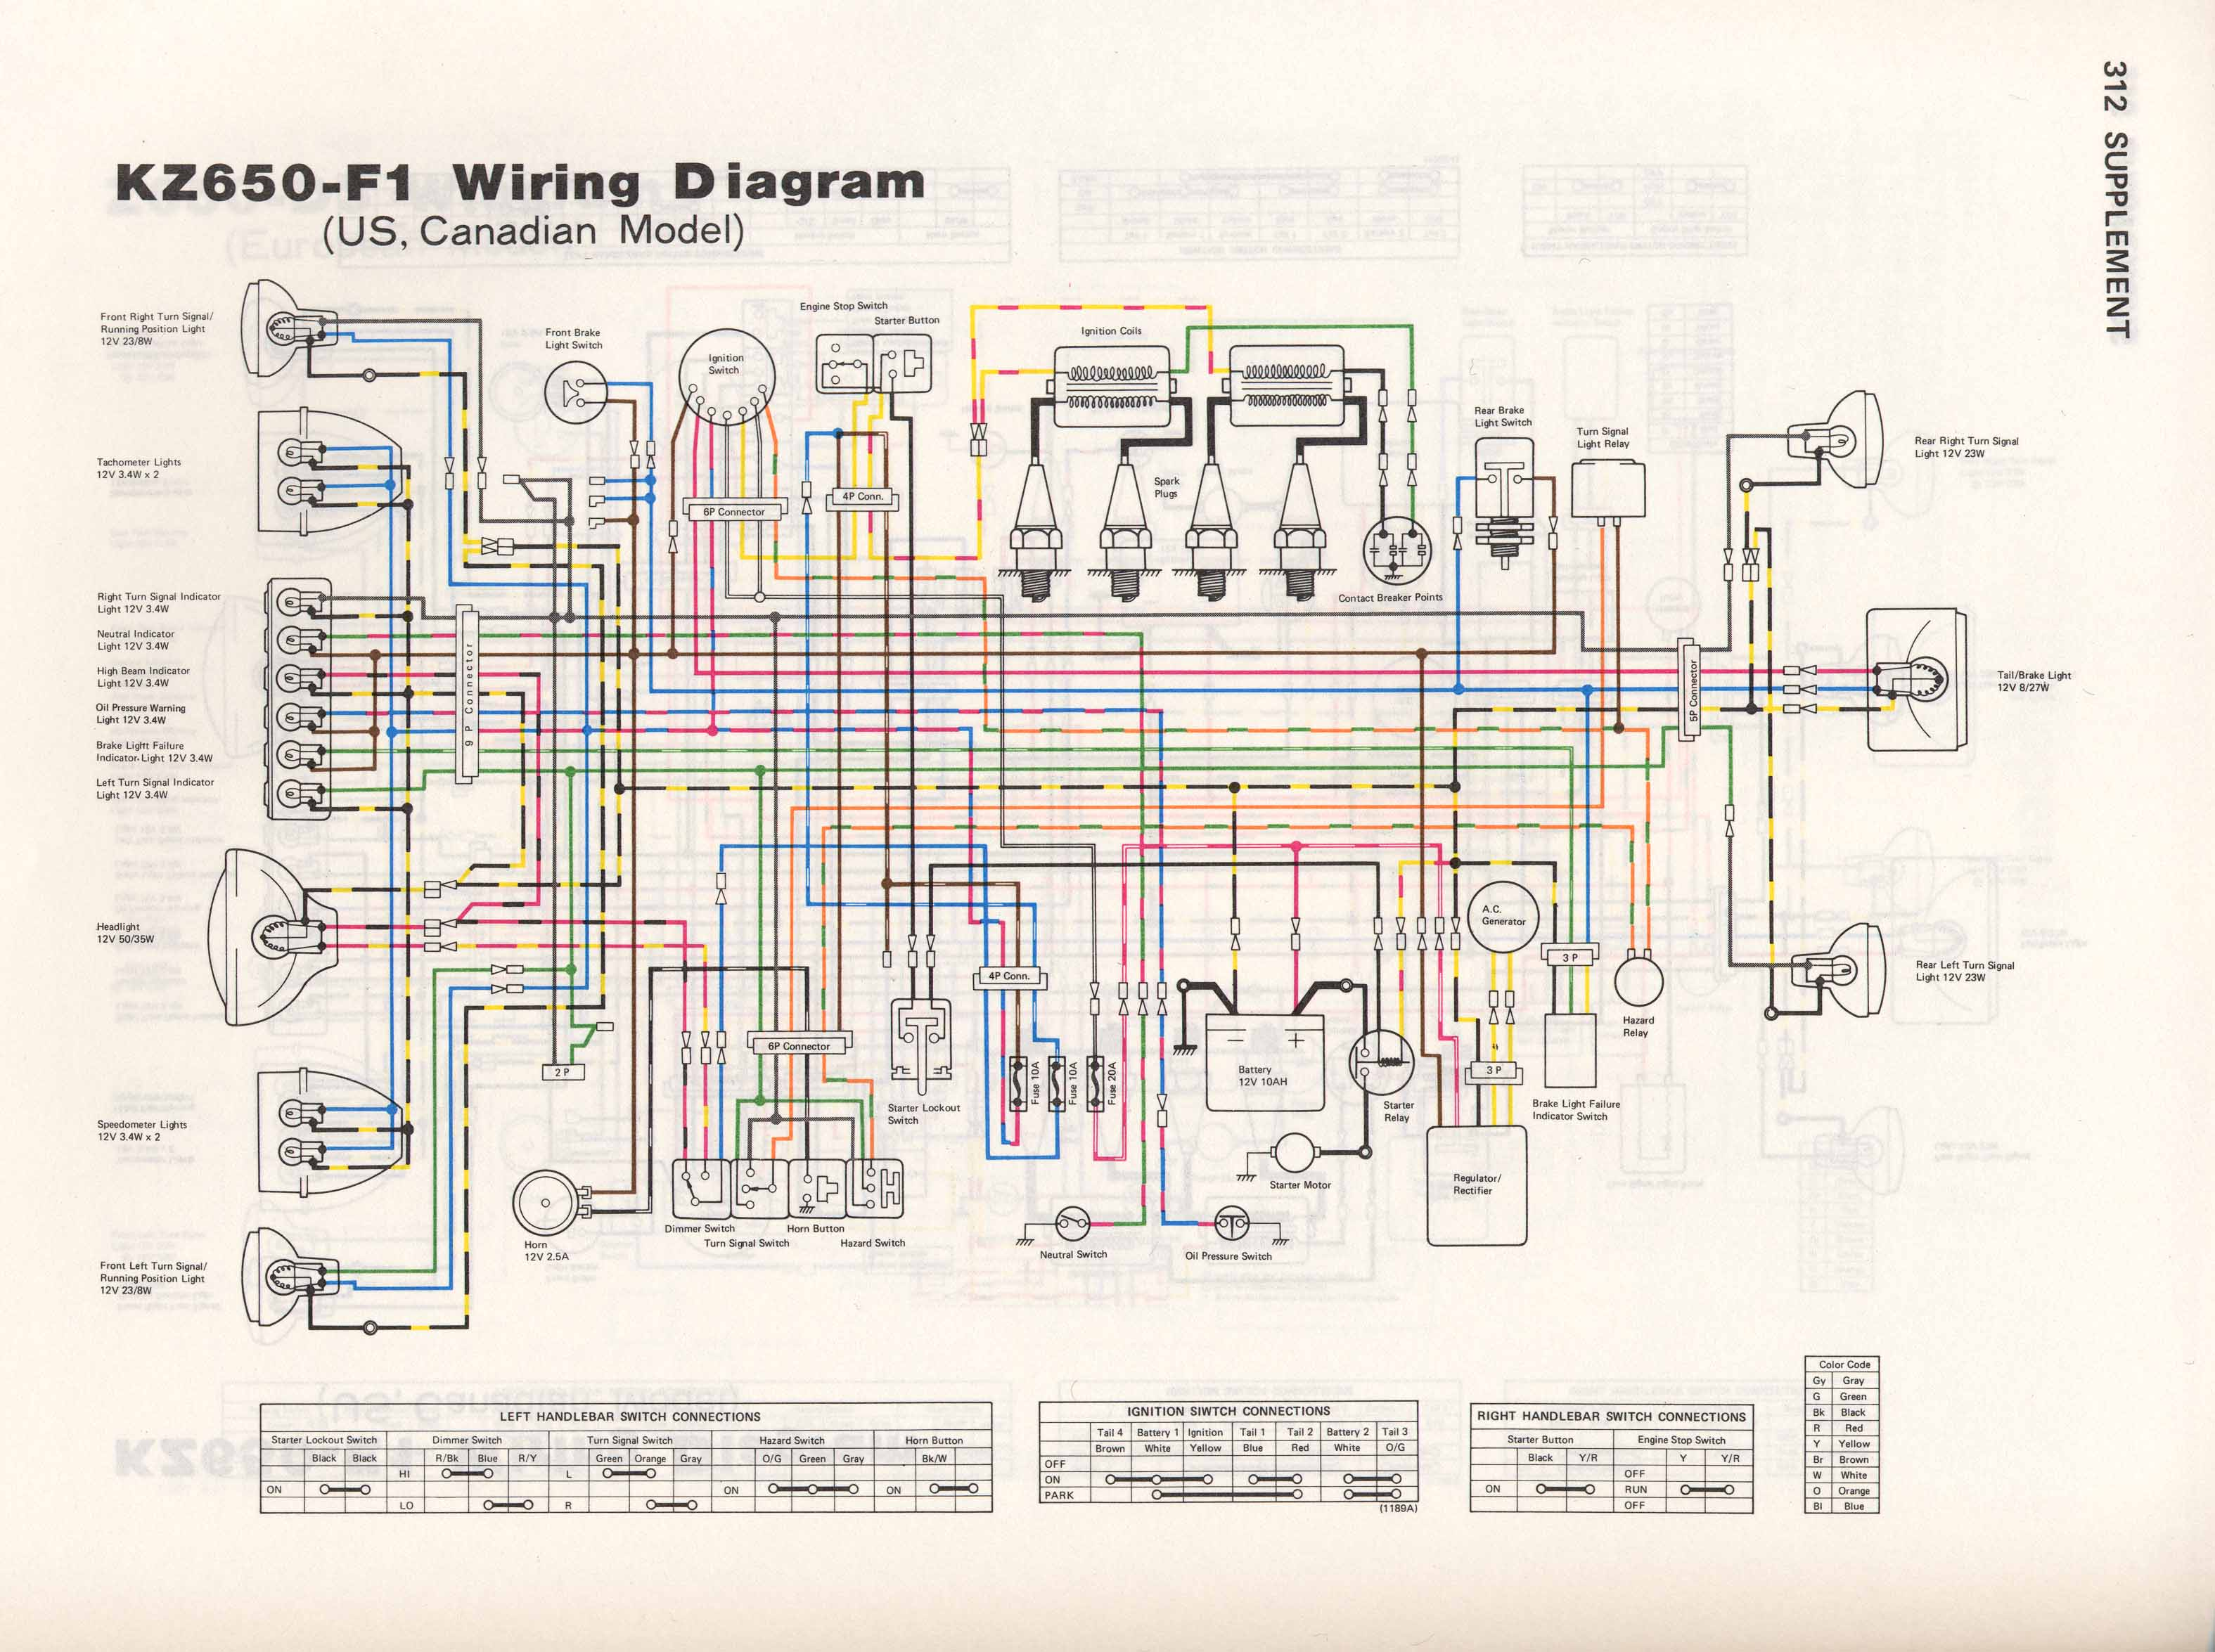 KZ650 F1 kz650 info wiring diagrams 1980 kz650 wiring diagram at readyjetset.co